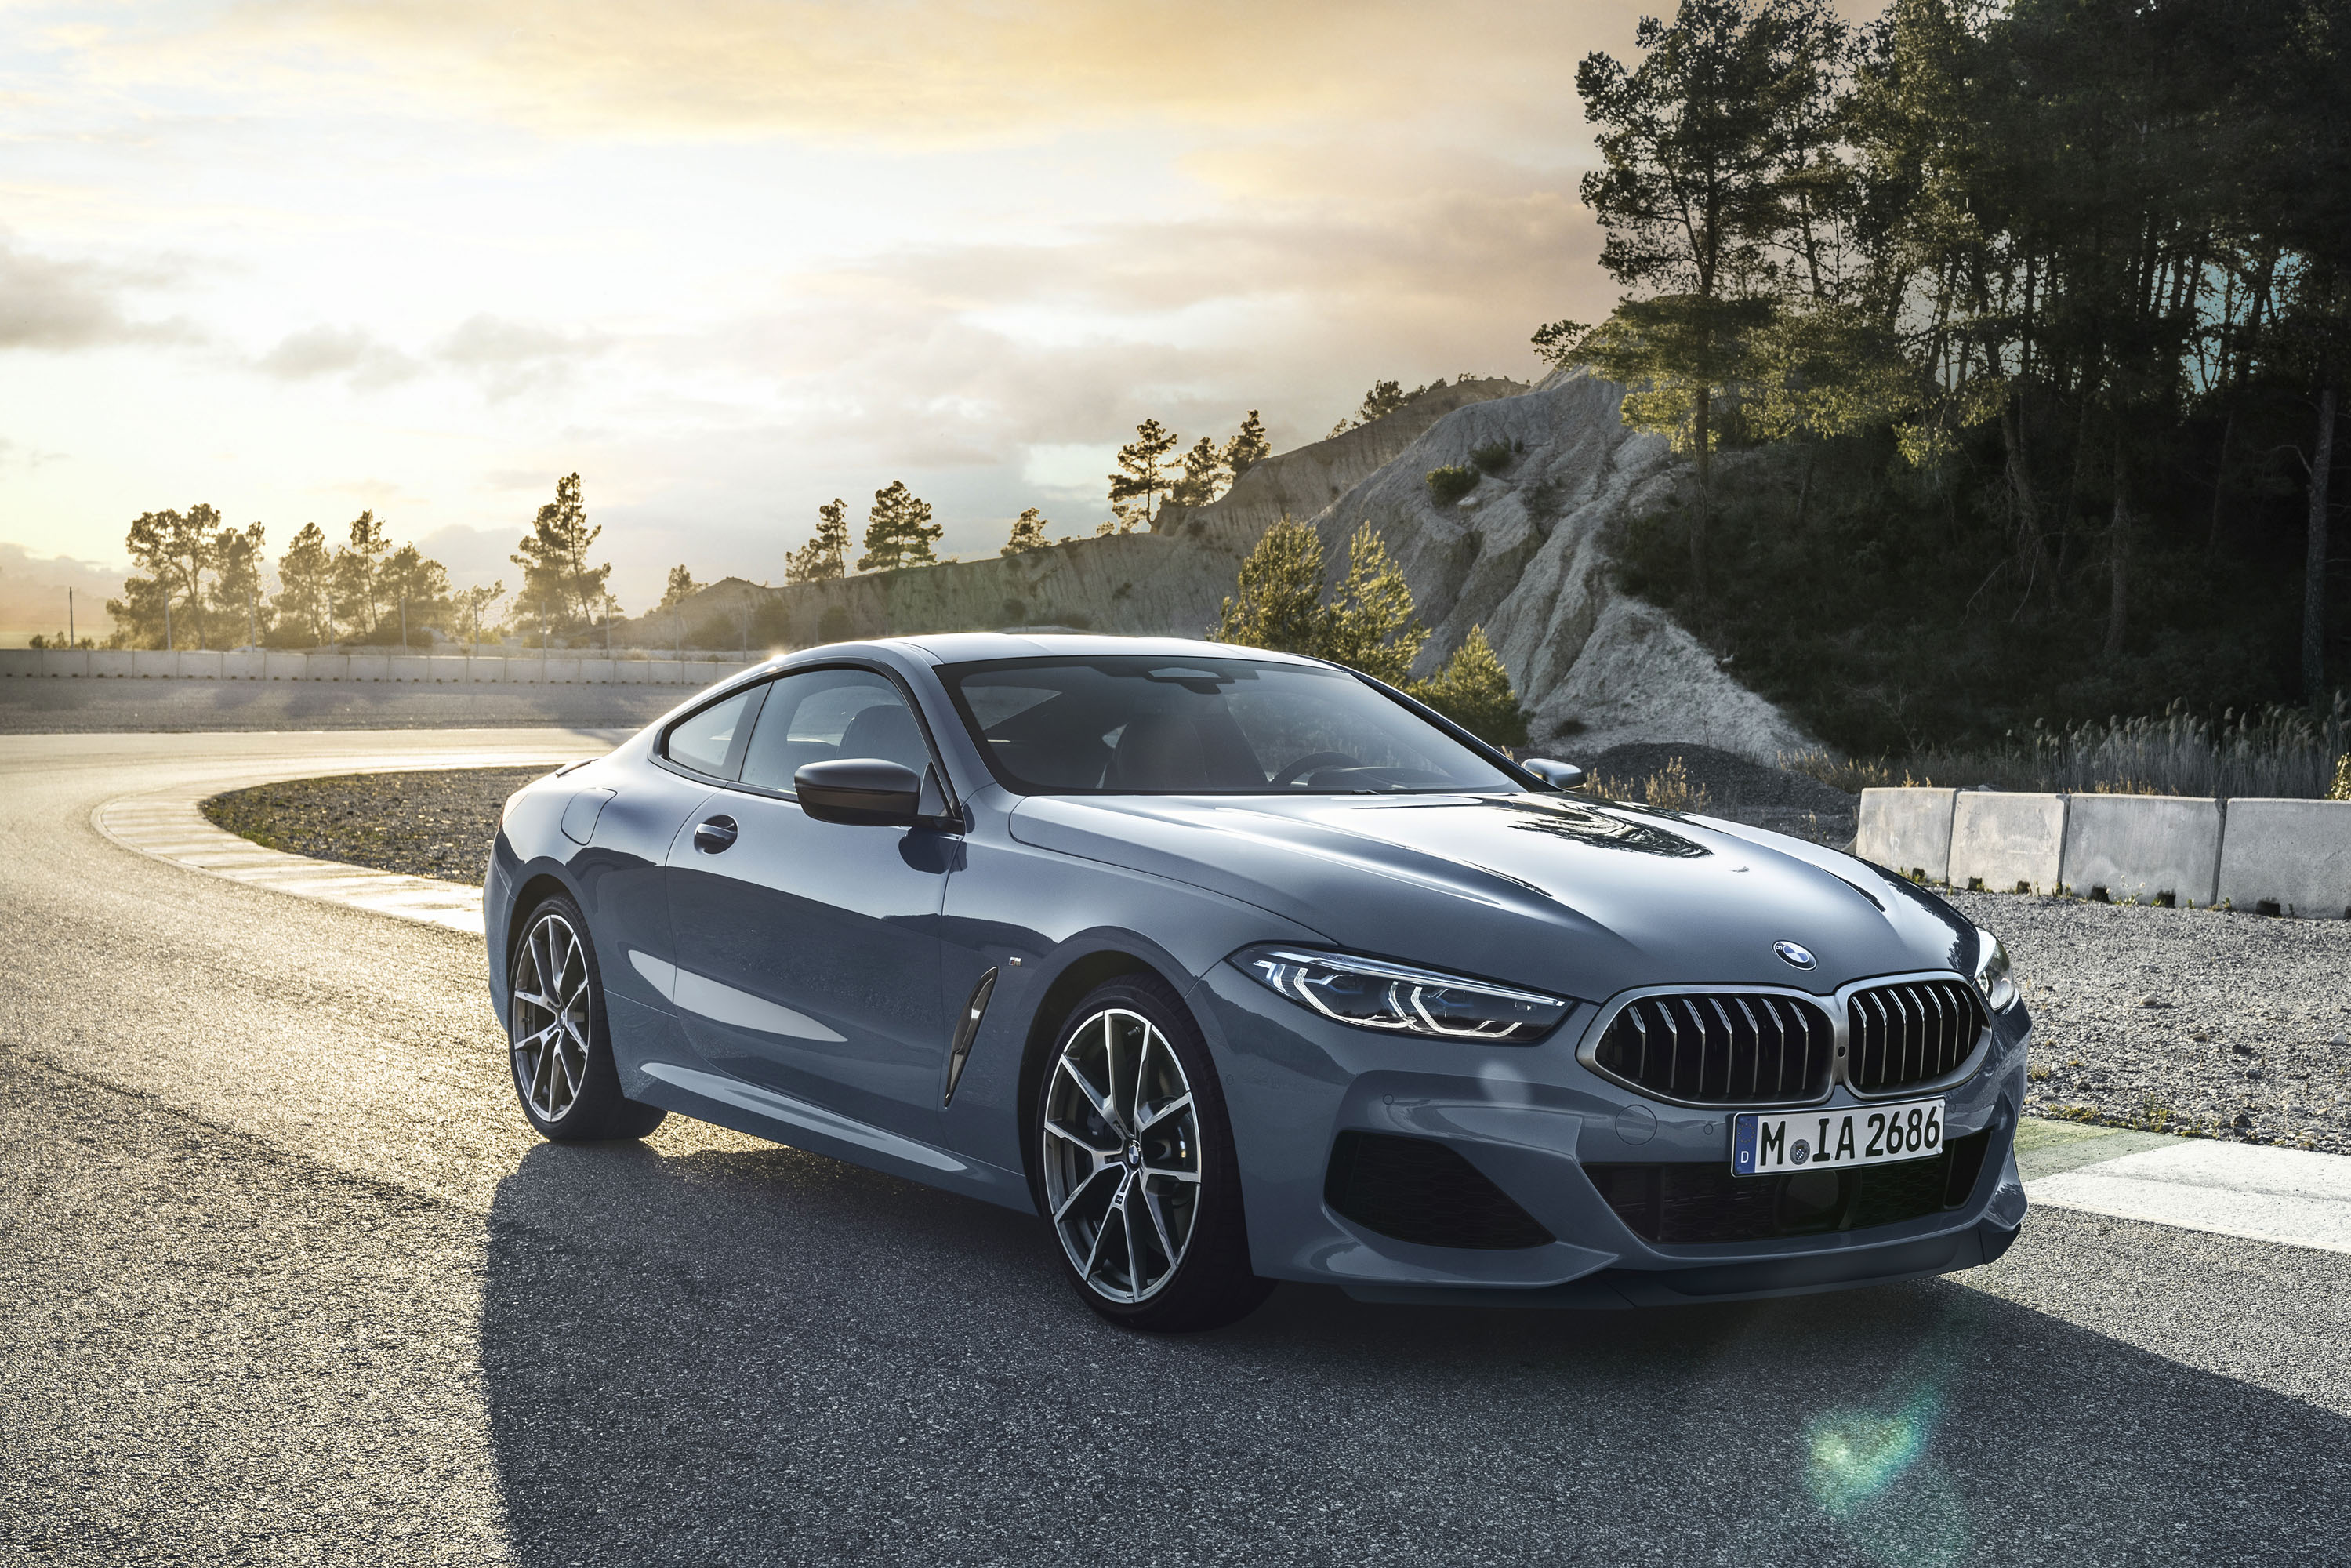 2019 bmw 8 series coupe return of the bodacious 39 bahnstormer. Black Bedroom Furniture Sets. Home Design Ideas